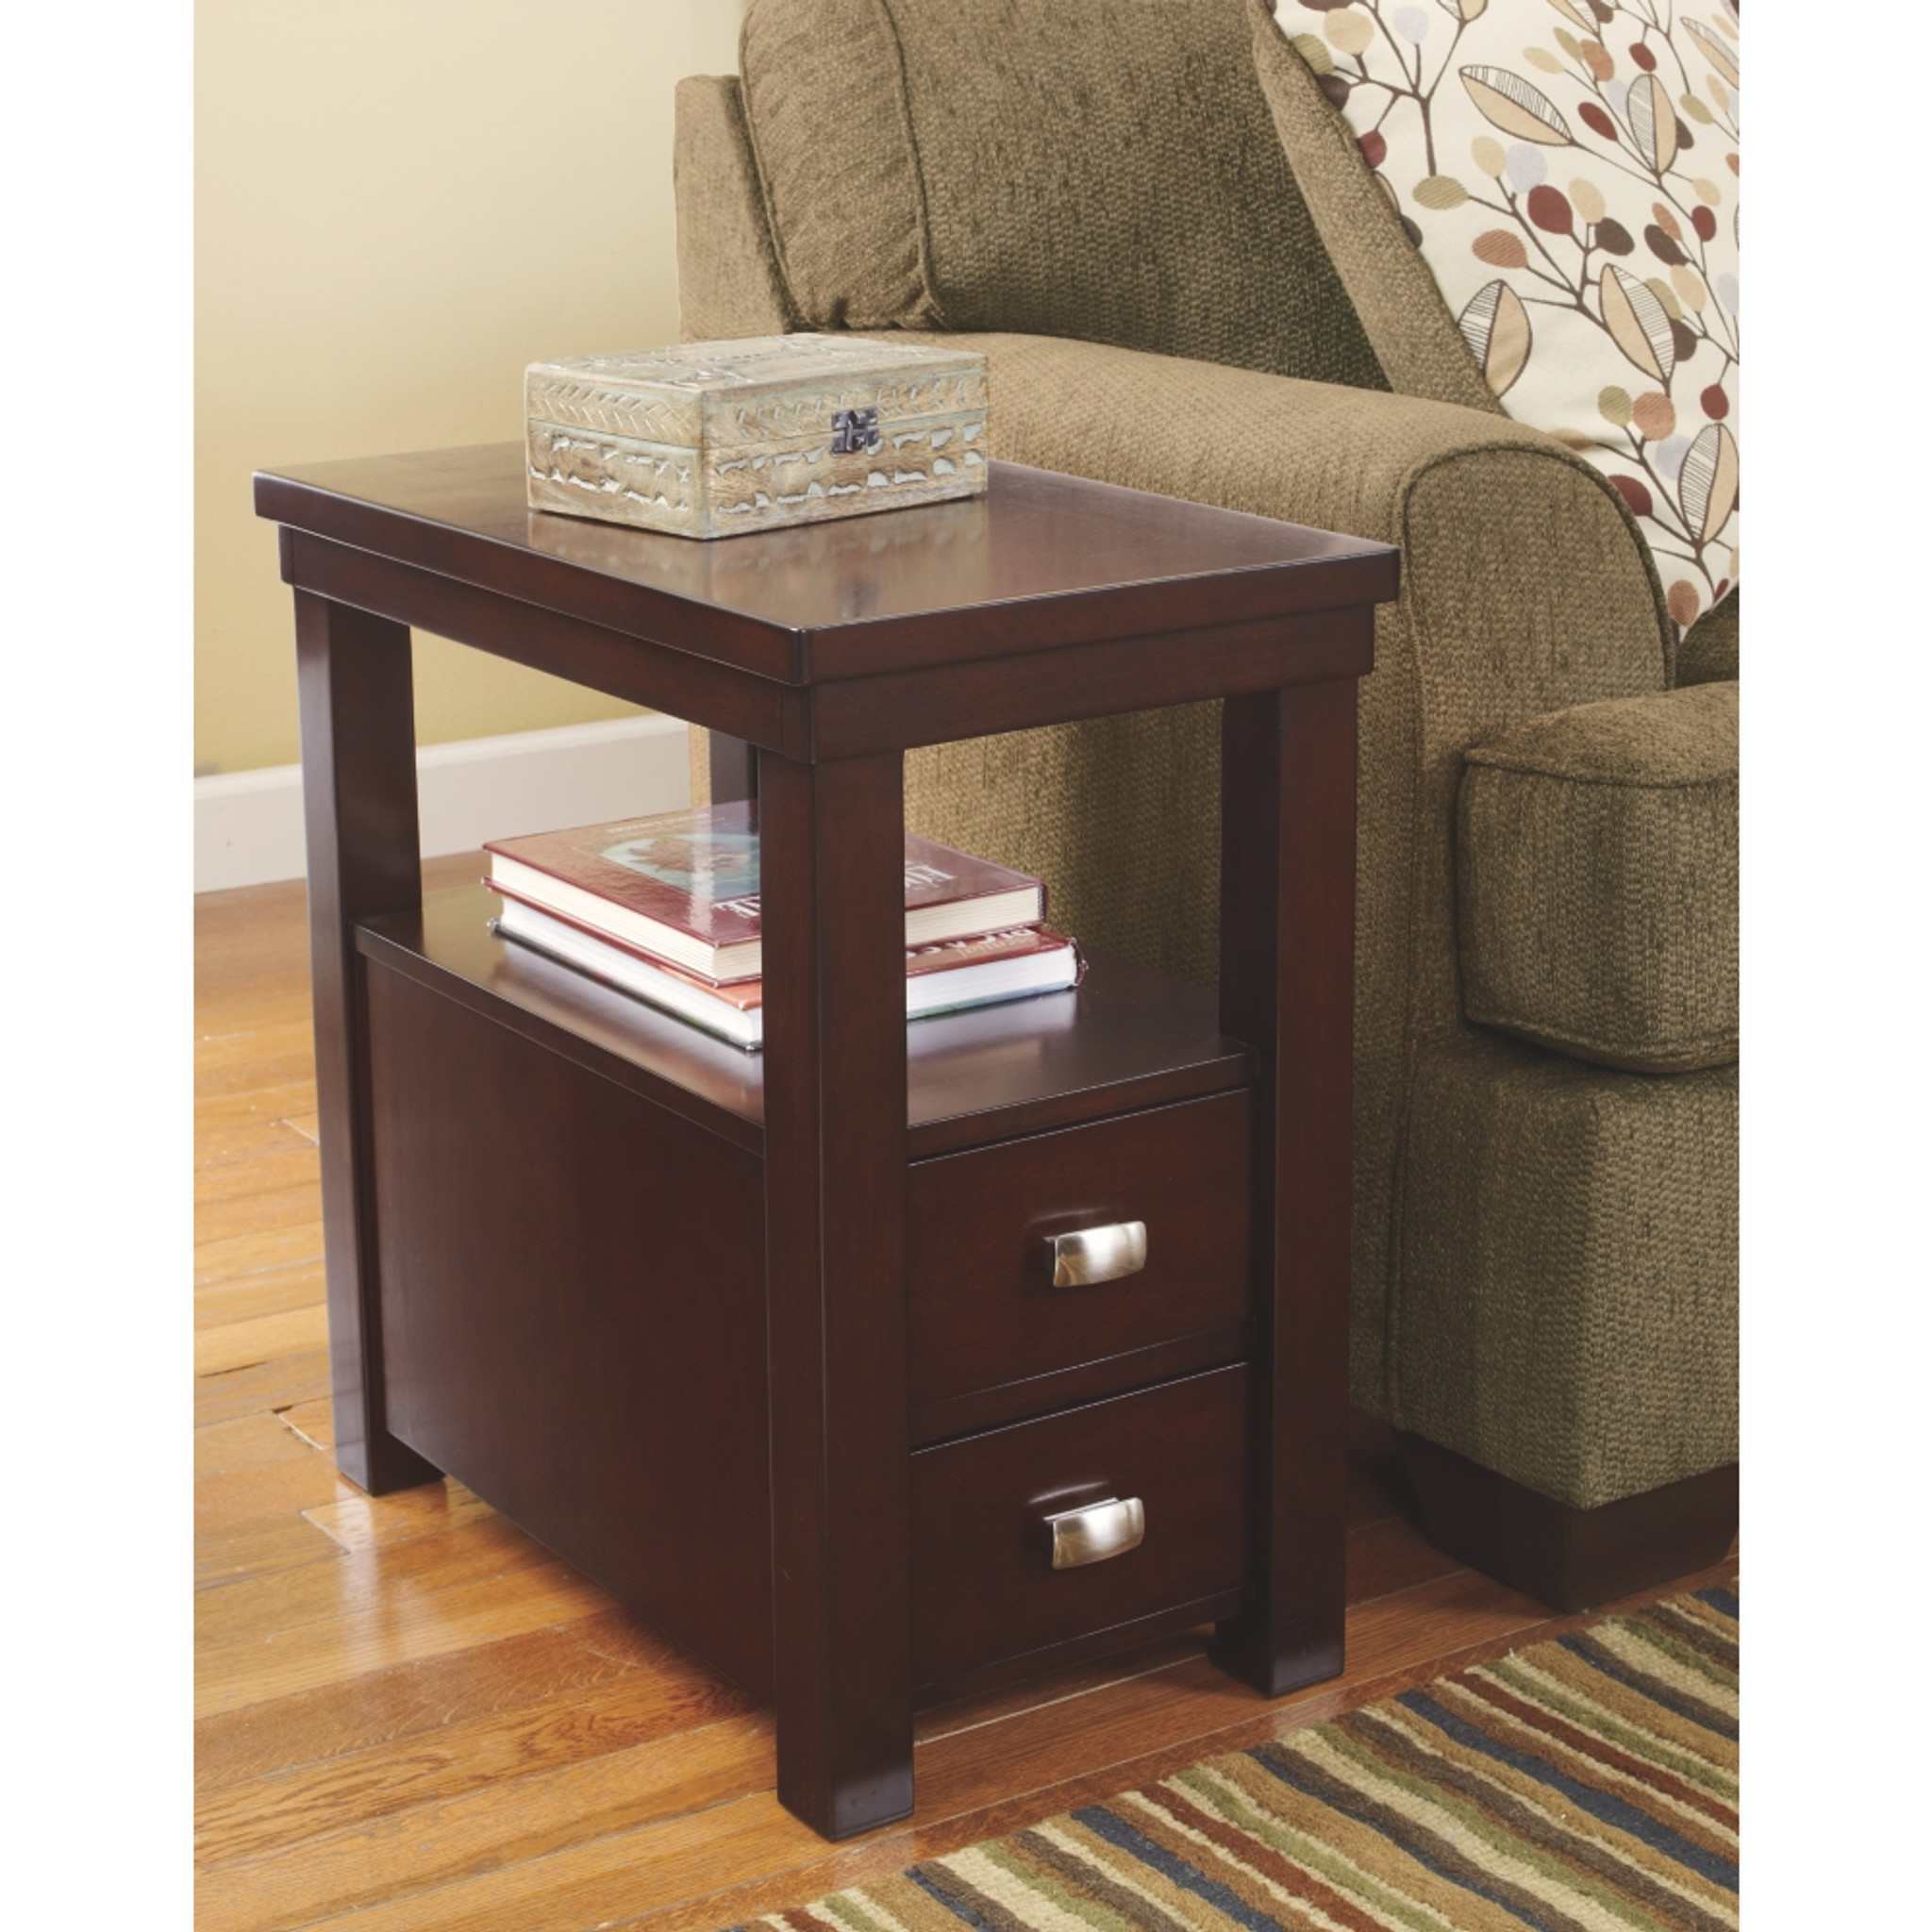 Hatsuko Chairside End Table By Ashley Furniture